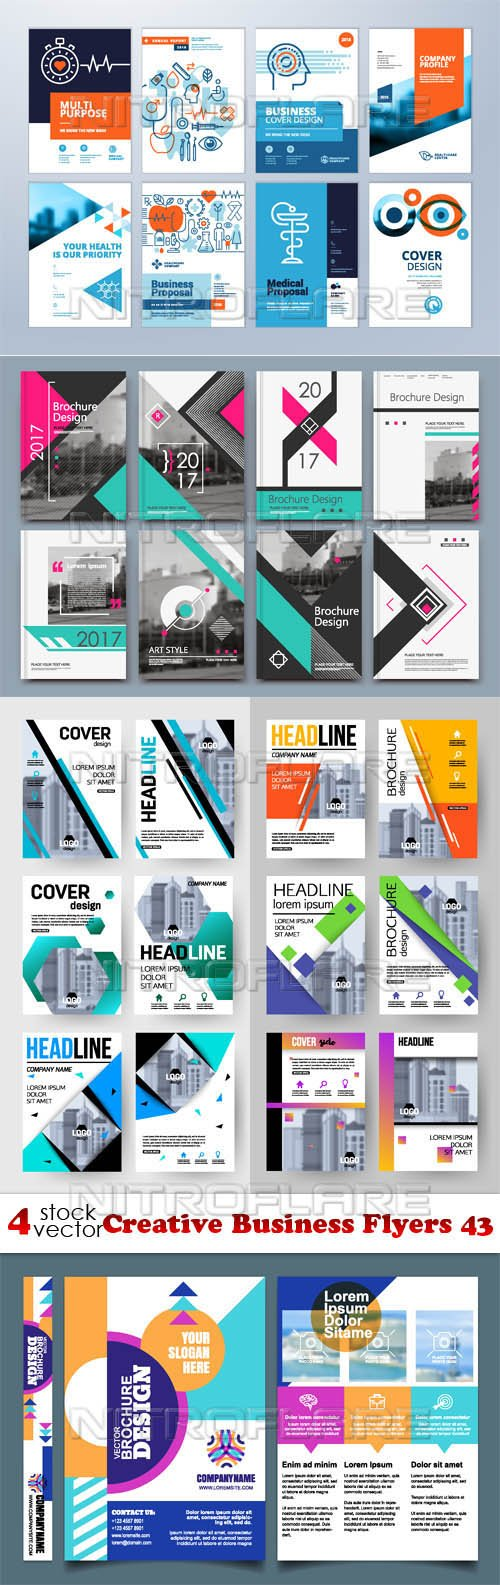 Vectors - Creative Business Flyers 43